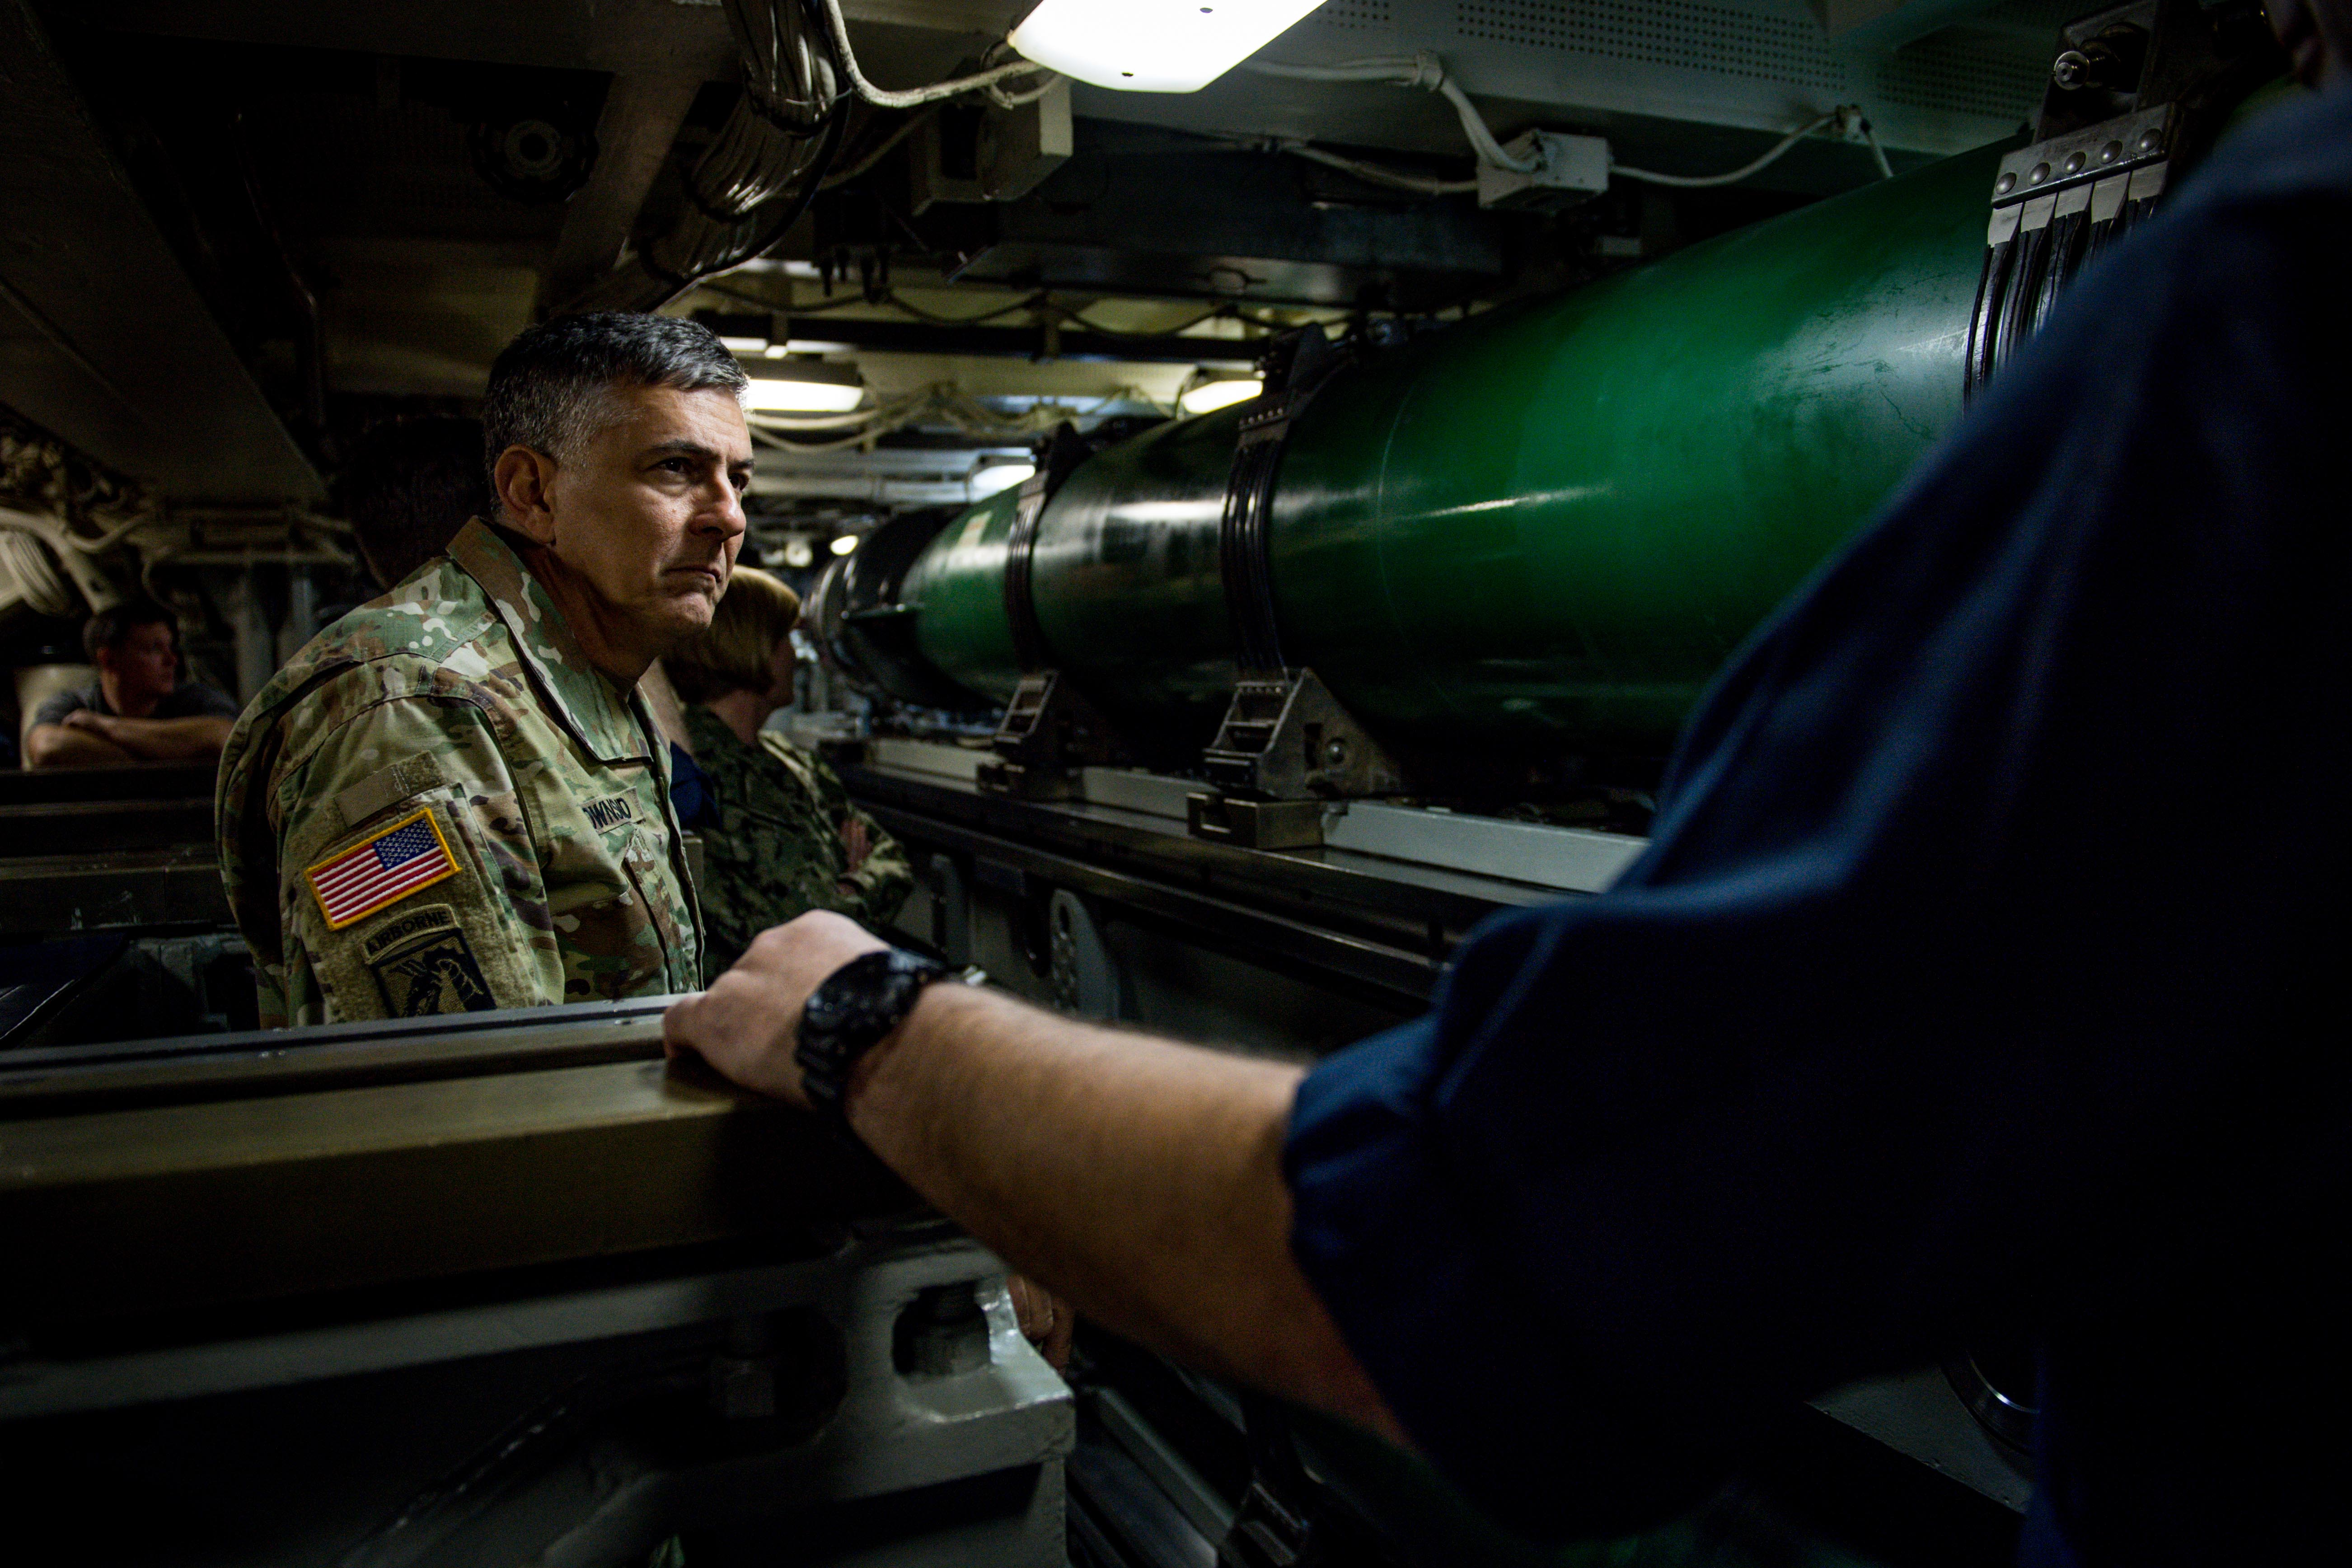 U.S. Army Gen. Stephen J. Townsend, commander, U.S. Africa Command (AFRICOM), left, speaks with Command Master Chief Joseph H. Riley, chief of the boat, Ohio-class fleet guided-missile submarine USS Florida (SSGN 728), in the torpedo room aboard the ship in the Mediterranean Sea Nov. 25, 2019. AFRICOM, a full-spectrum combatant command, is one of the six U.S. Defense Department's geographic combatant commands and is responsible for all DoD operations, exercises, and security cooperation on the African continent, its island nations, and surrounding waters. (U.S. Navy photo by Mass Communication Specialist 2nd Class Jonathan Nelson)